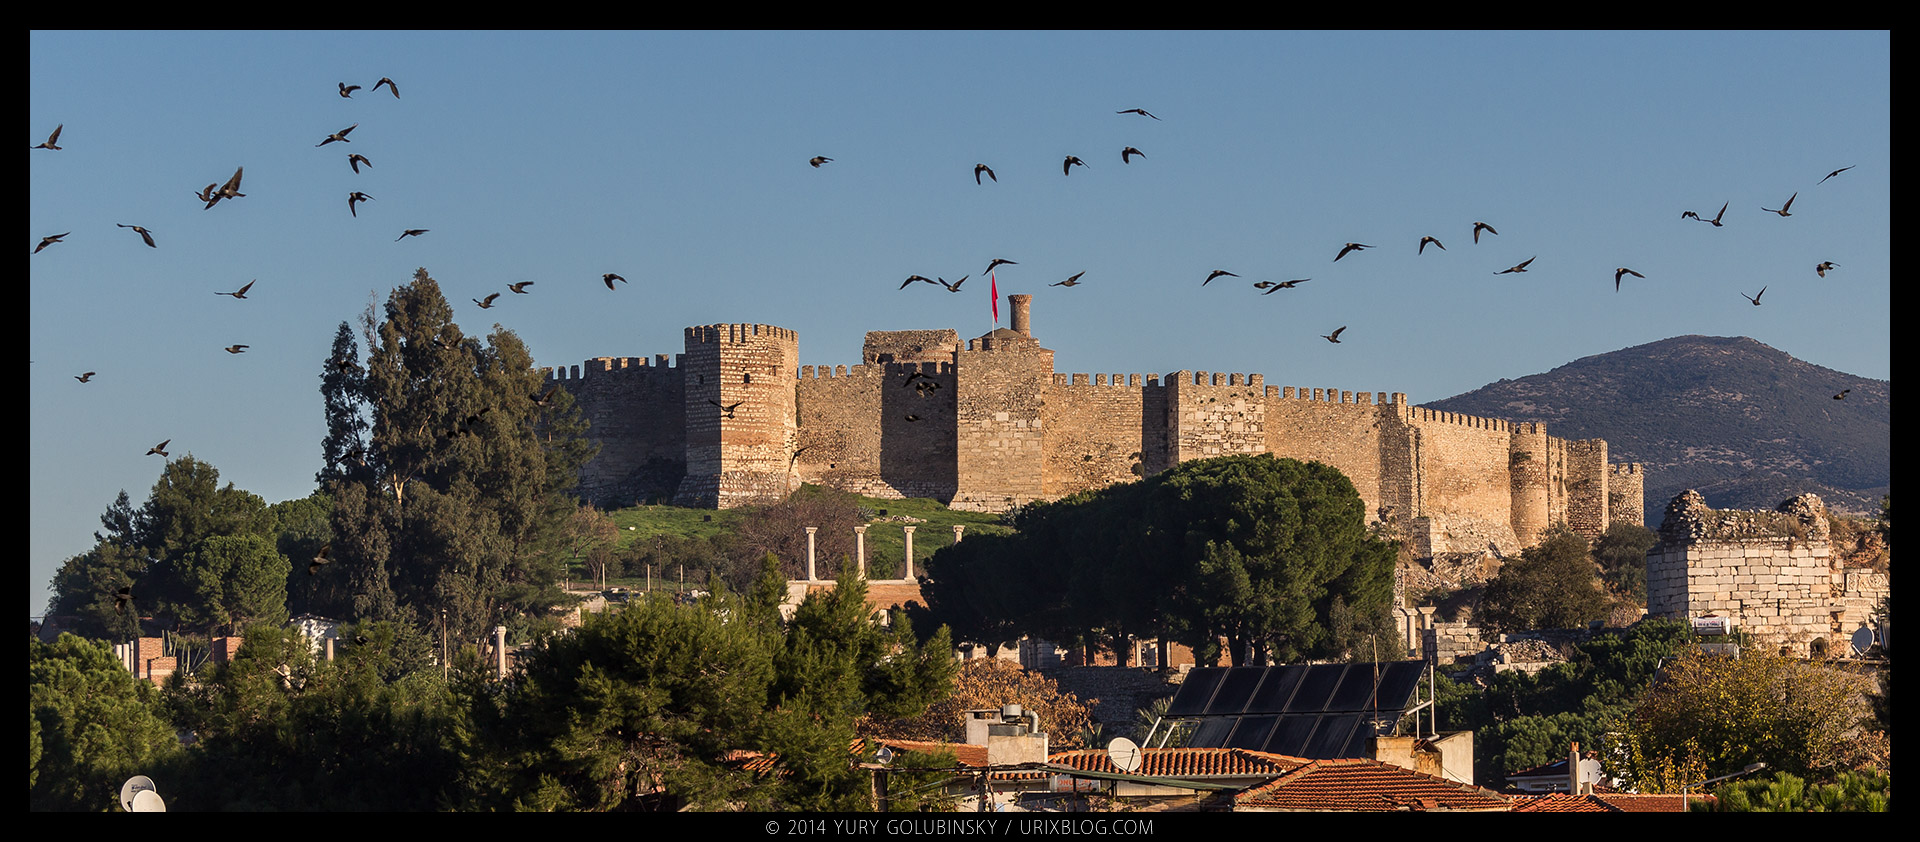 2014, Ayasuluk, fortress, castle, hill, Selçuk, Izmir, Turkey, ancient, medieval, ruins, excavations, panorama